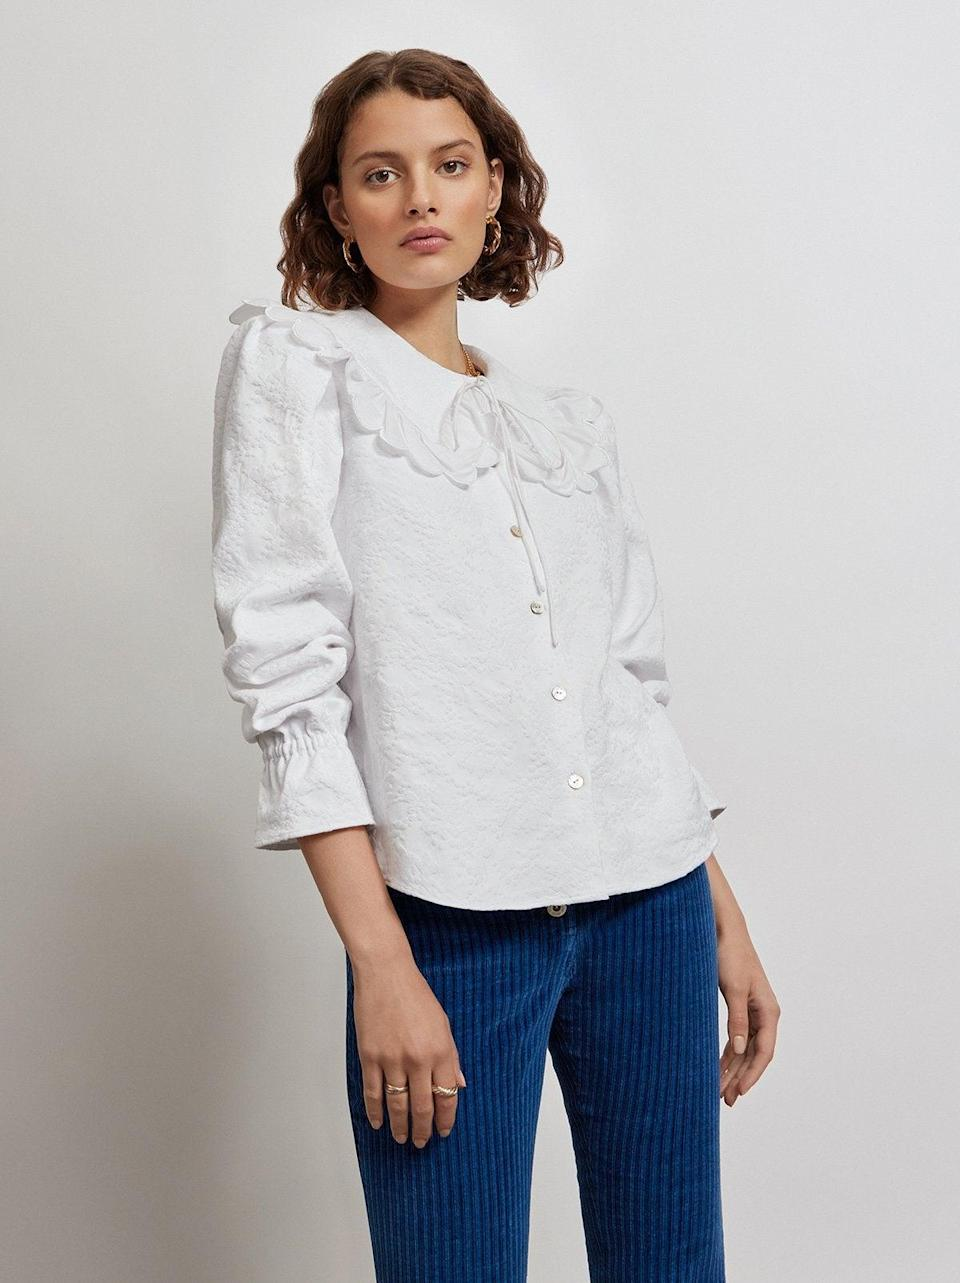 """<br><br><strong>Kitri x Jessie Bush</strong> Charlotte White Jacquard Top, $, available at <a href=""""https://kitristudio.com/products/charlotte-white-jacquard-top"""" rel=""""nofollow noopener"""" target=""""_blank"""" data-ylk=""""slk:Kitri"""" class=""""link rapid-noclick-resp"""">Kitri</a>"""